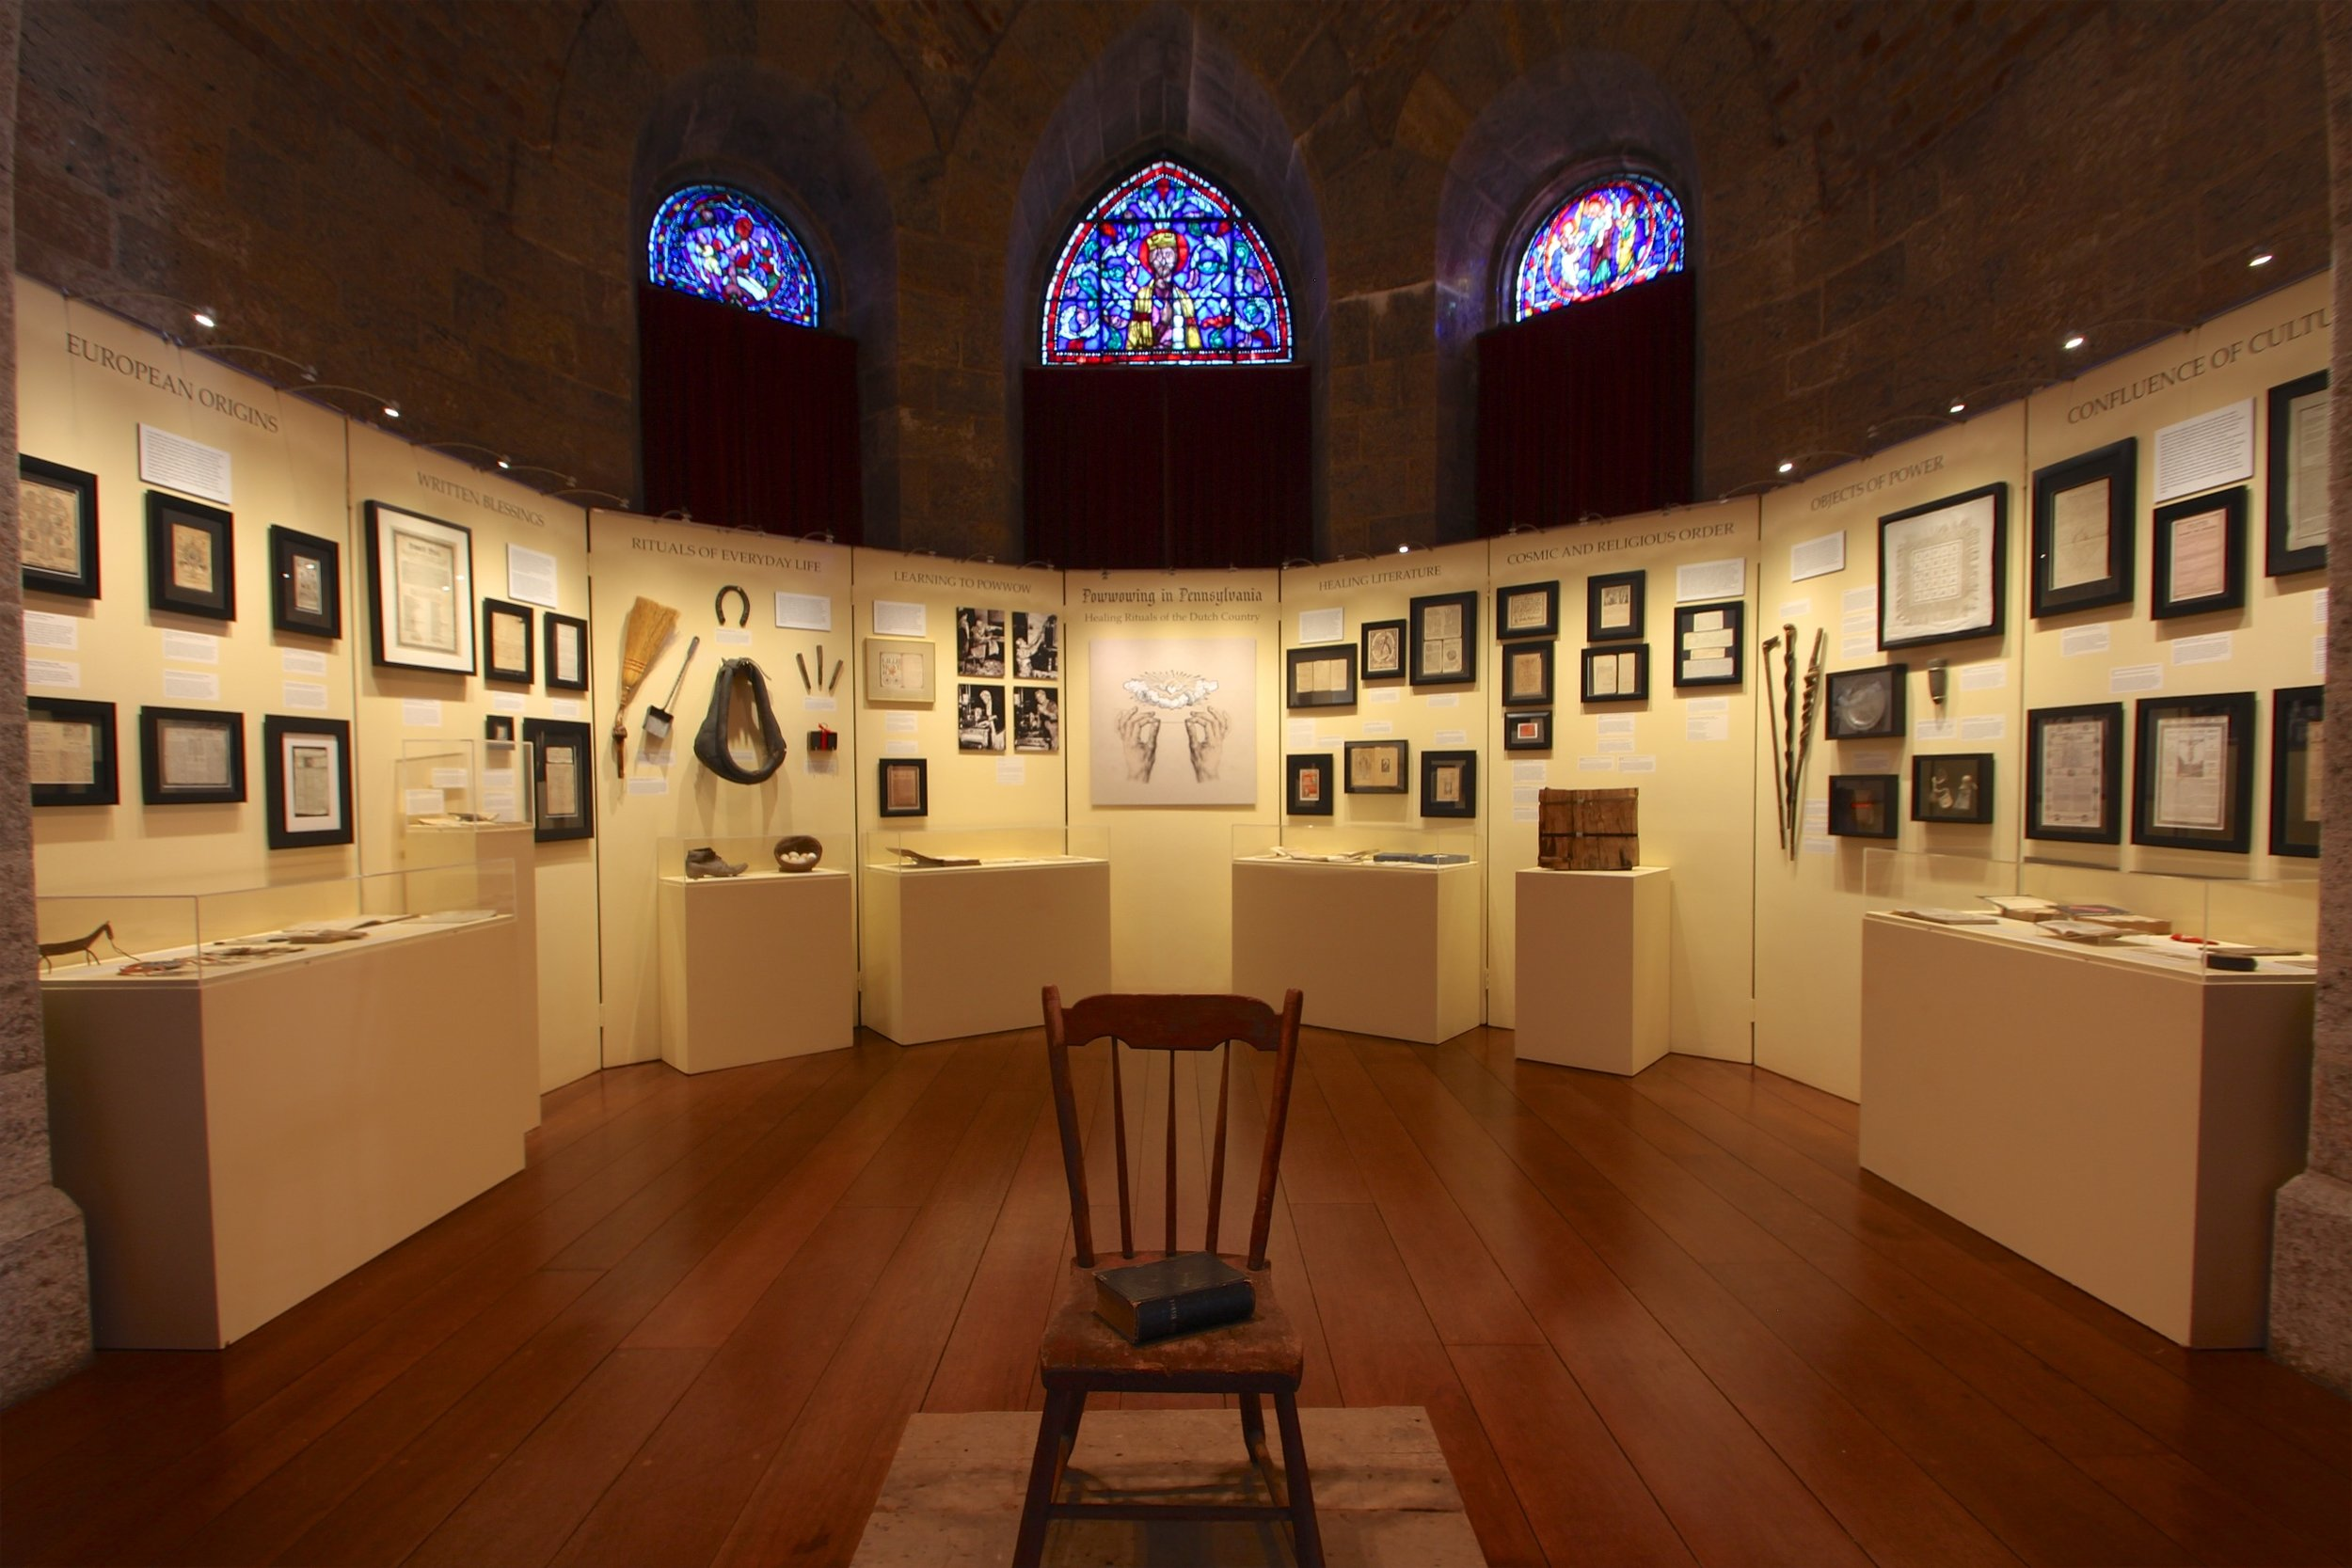 Powwowing in Pennsylvania: Healing Rituals of the Dutch Country  exhibition in Glencairn's Upper Hall.